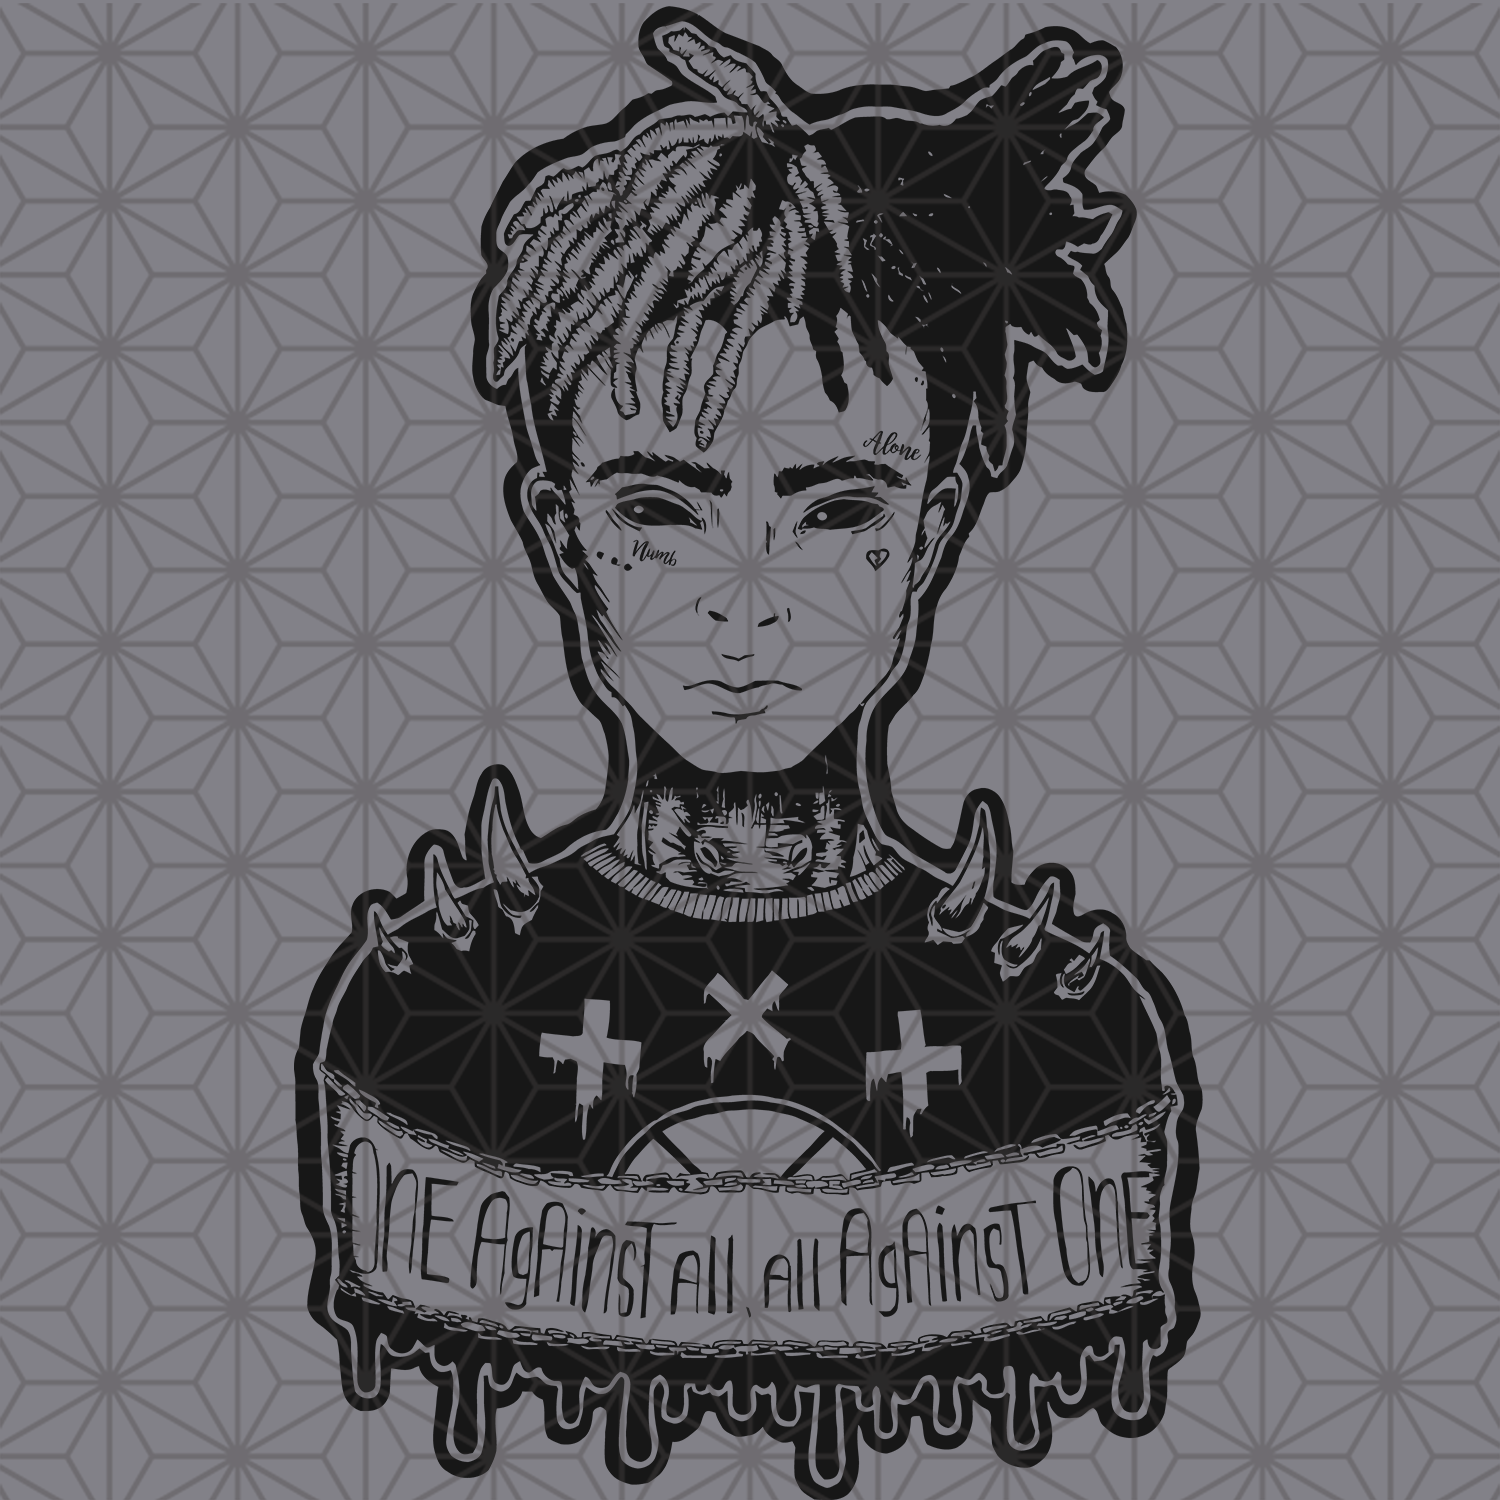 One against all svg, XxxTentacion art svg print, XxxTentacion art, XxxTentacion svg, XxxTentacion poster, rip XxxTentacion, XxxTentacion shirt, XxxTentacion poster, XxxTentacion logo, music svg, music lover svg, music gift, svg files for cricut, svg files